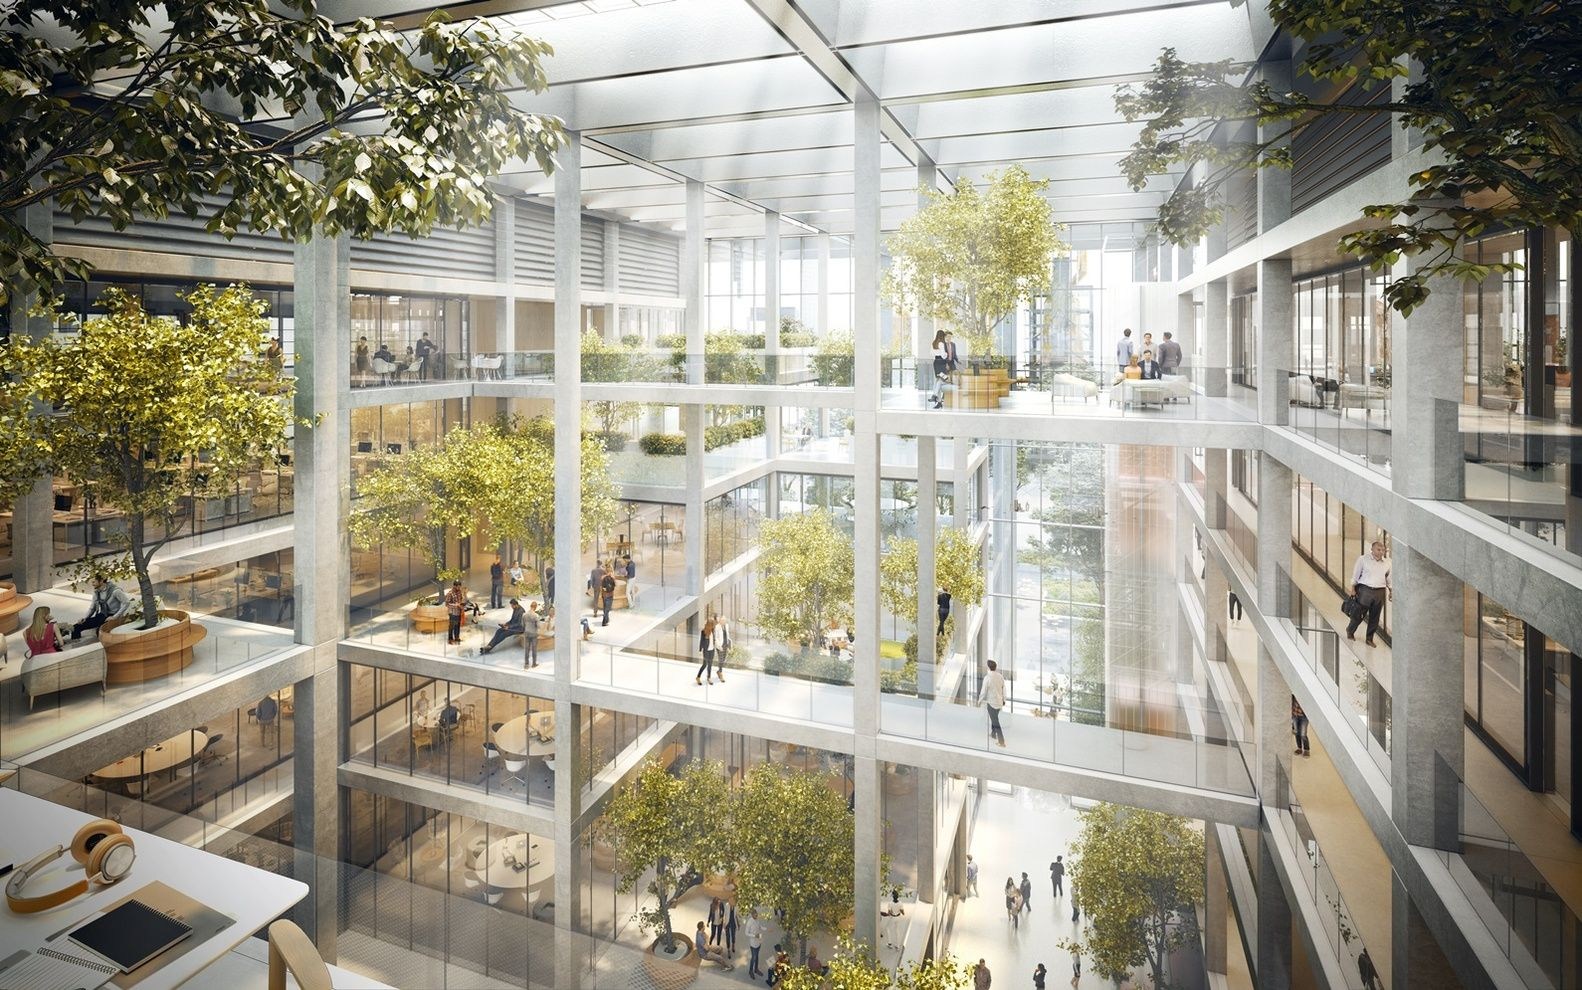 Gallery of Foster + Partners Design Open Office Building